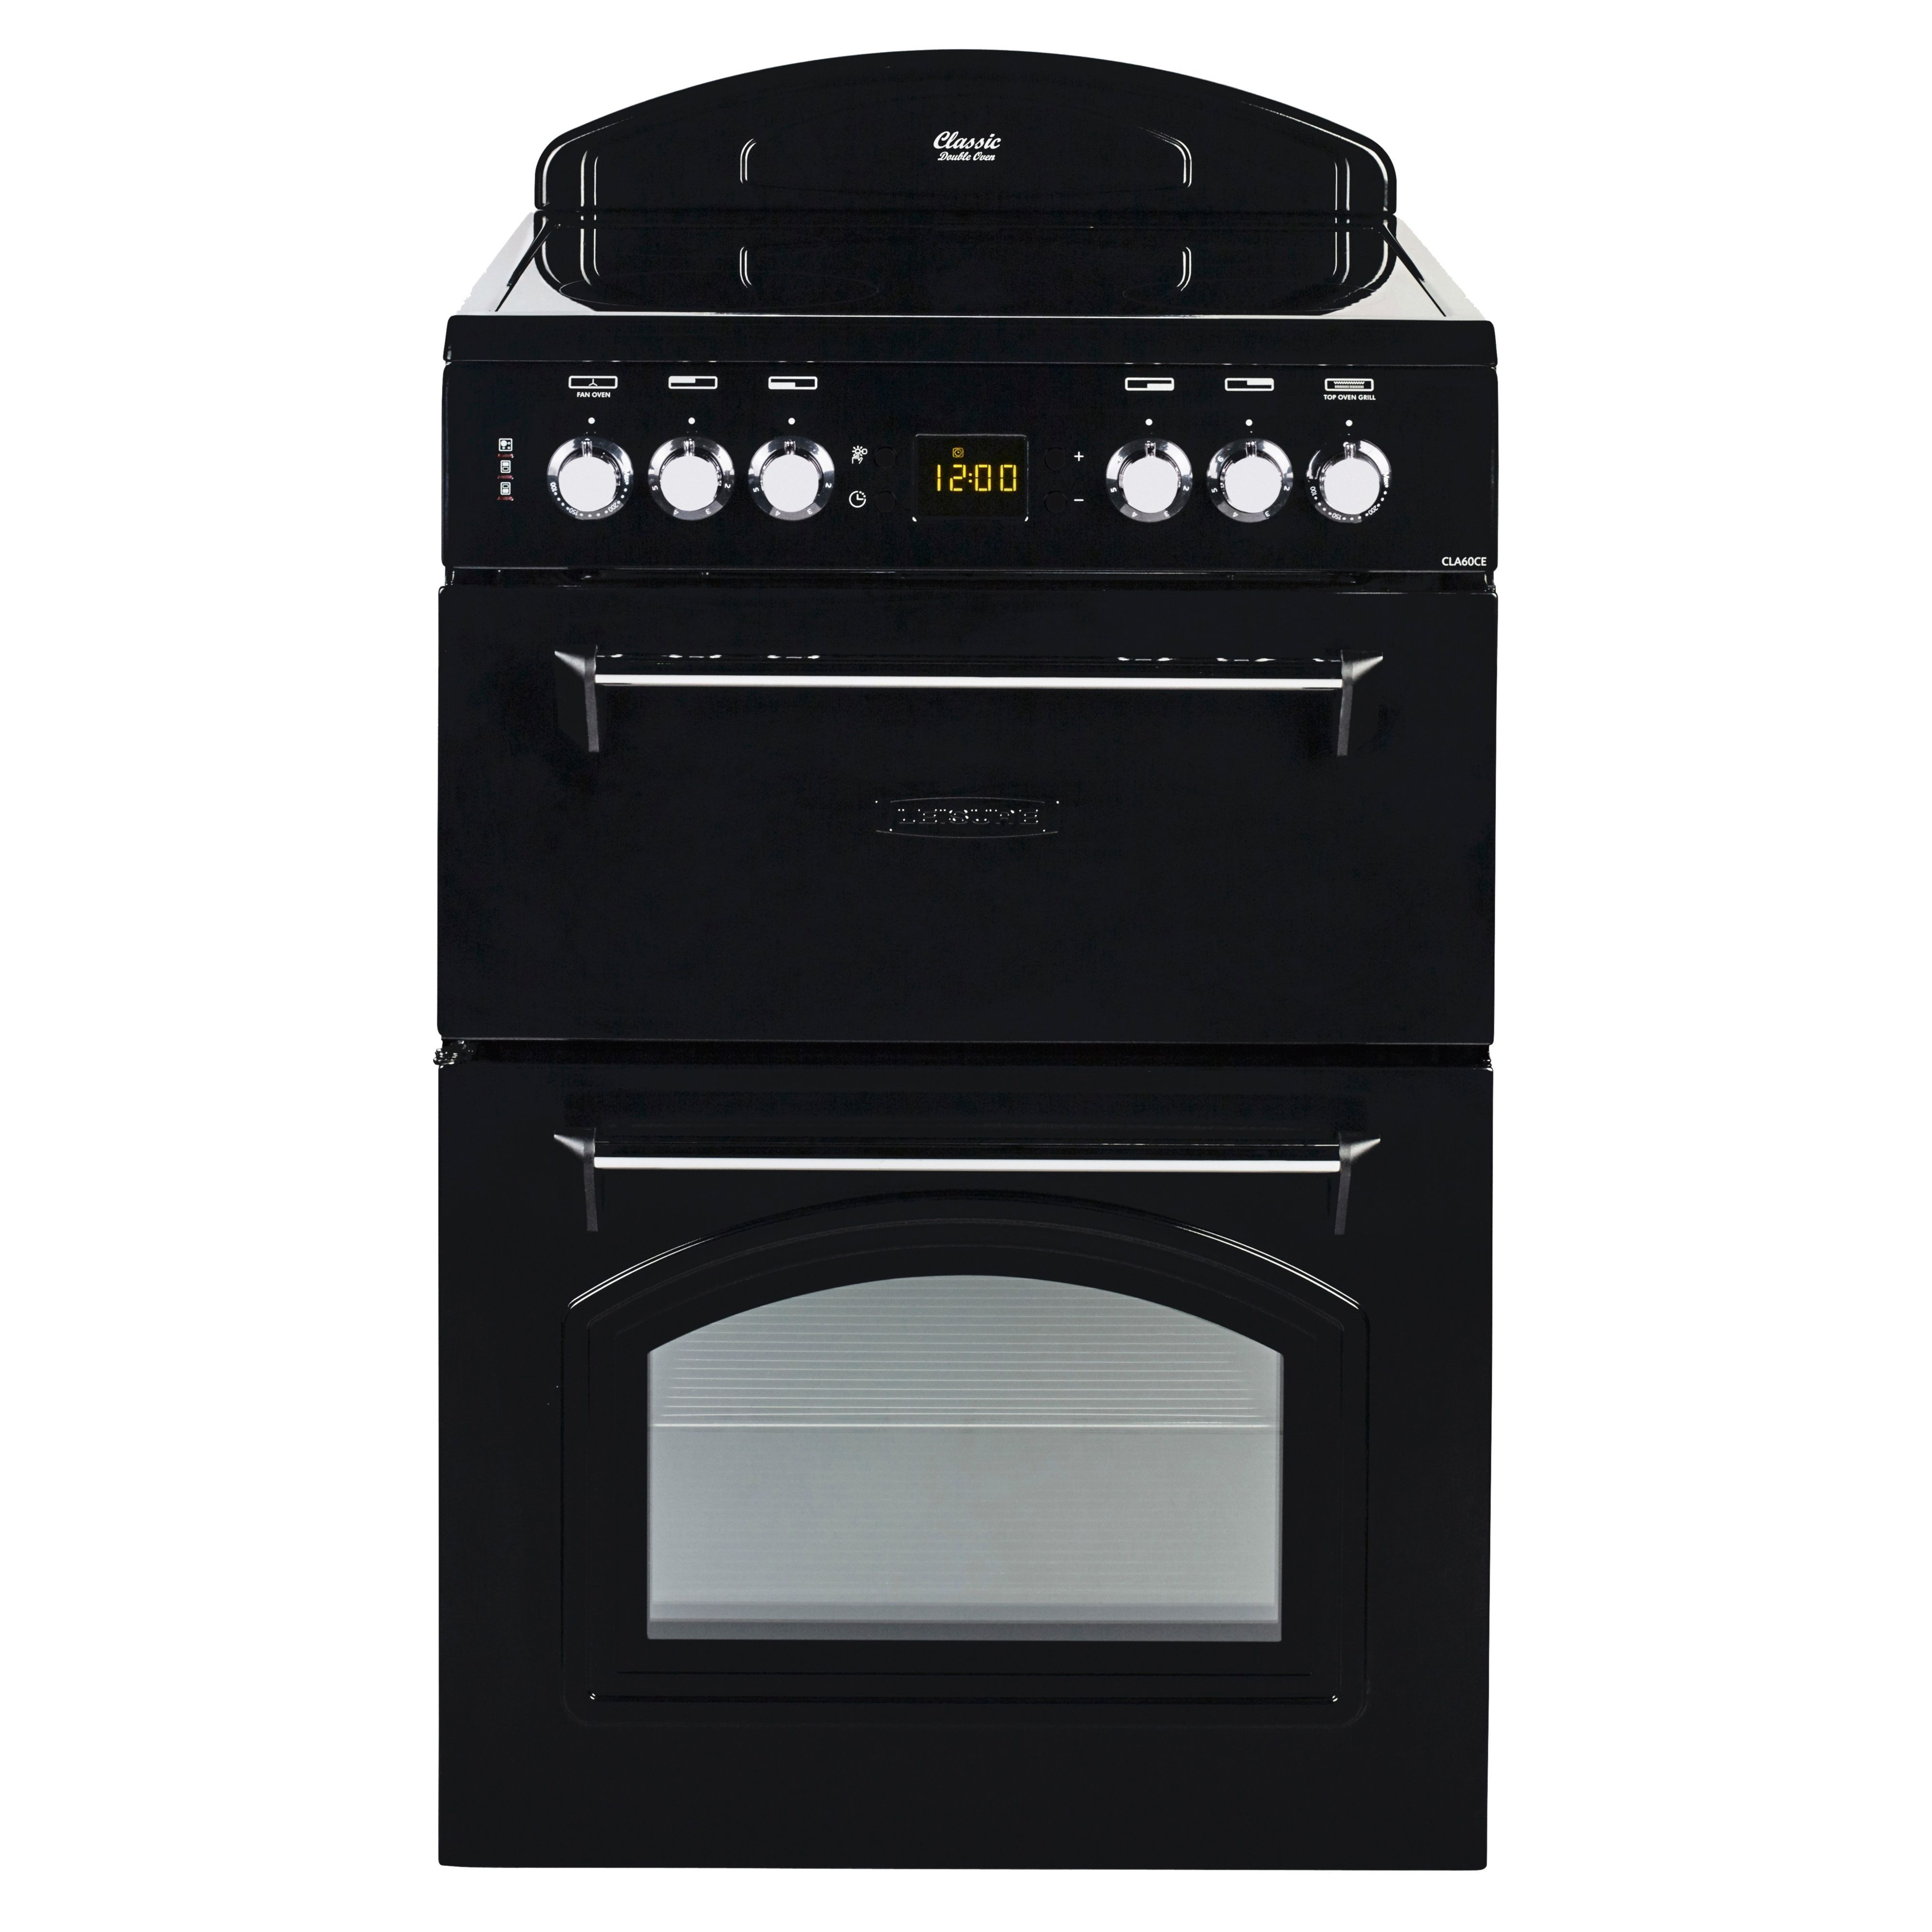 Uncategorized Kitchen Appliances Sheffield buy sheffield electric cooking stove online at best price in india freestanding kitchen appliances diy